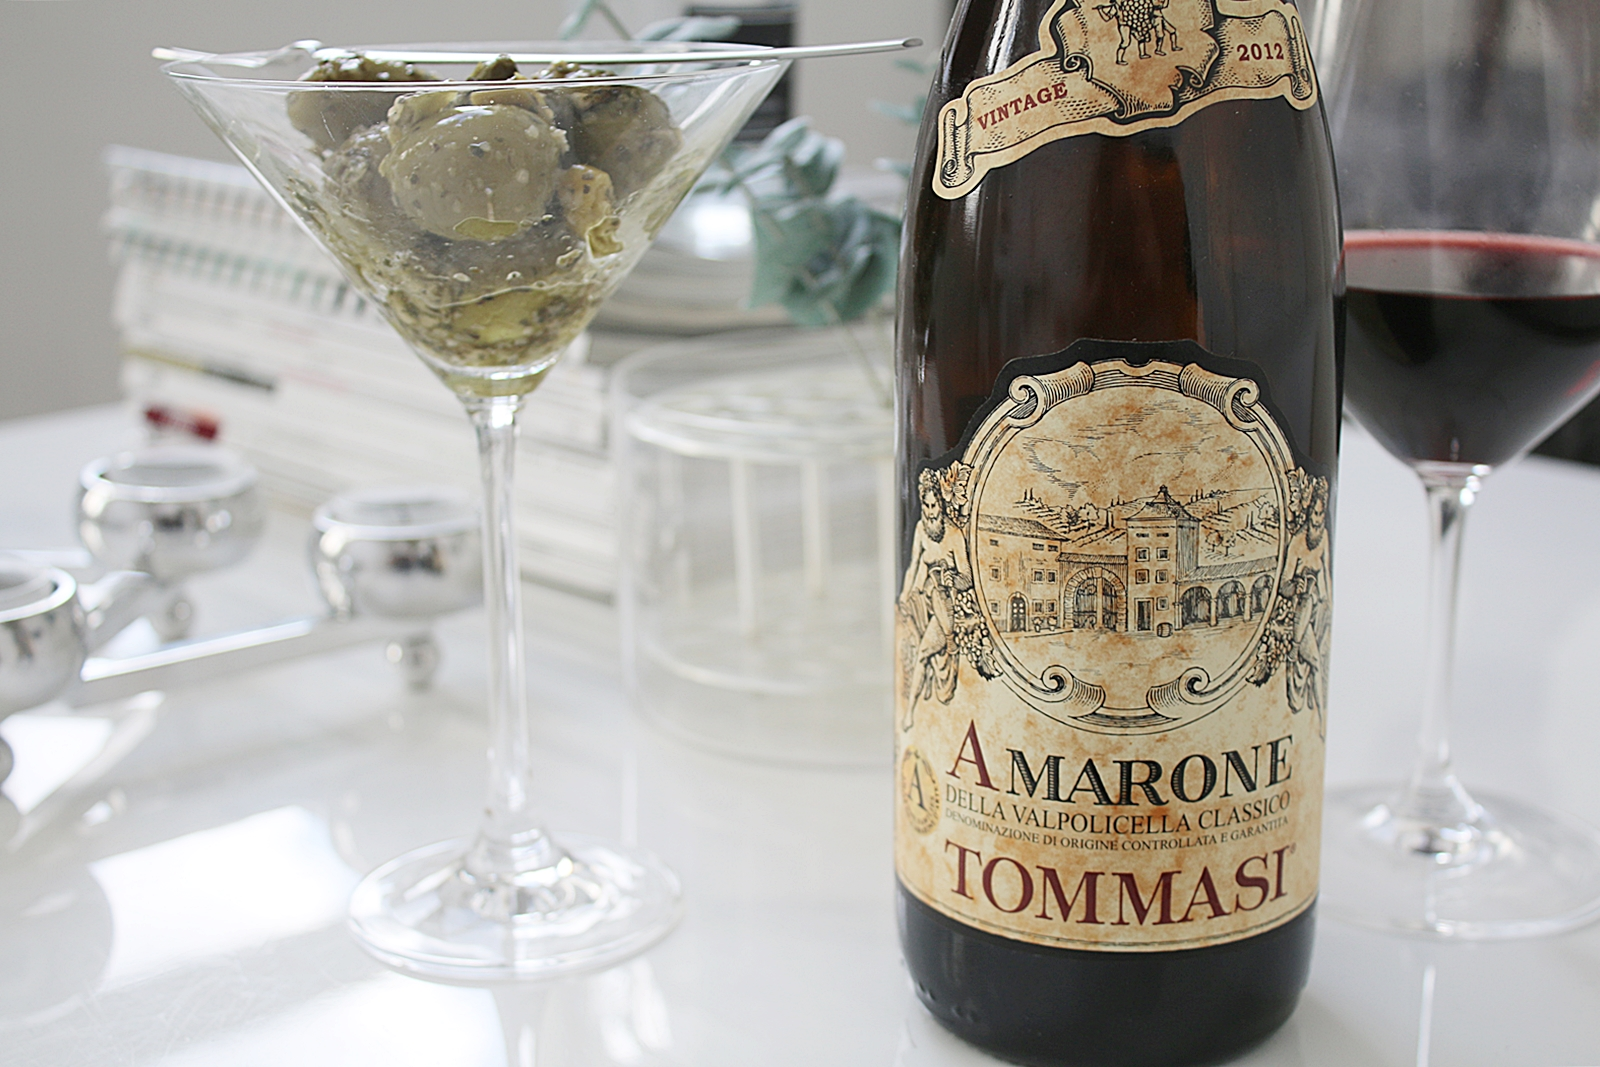 Min favorit Amarone vin